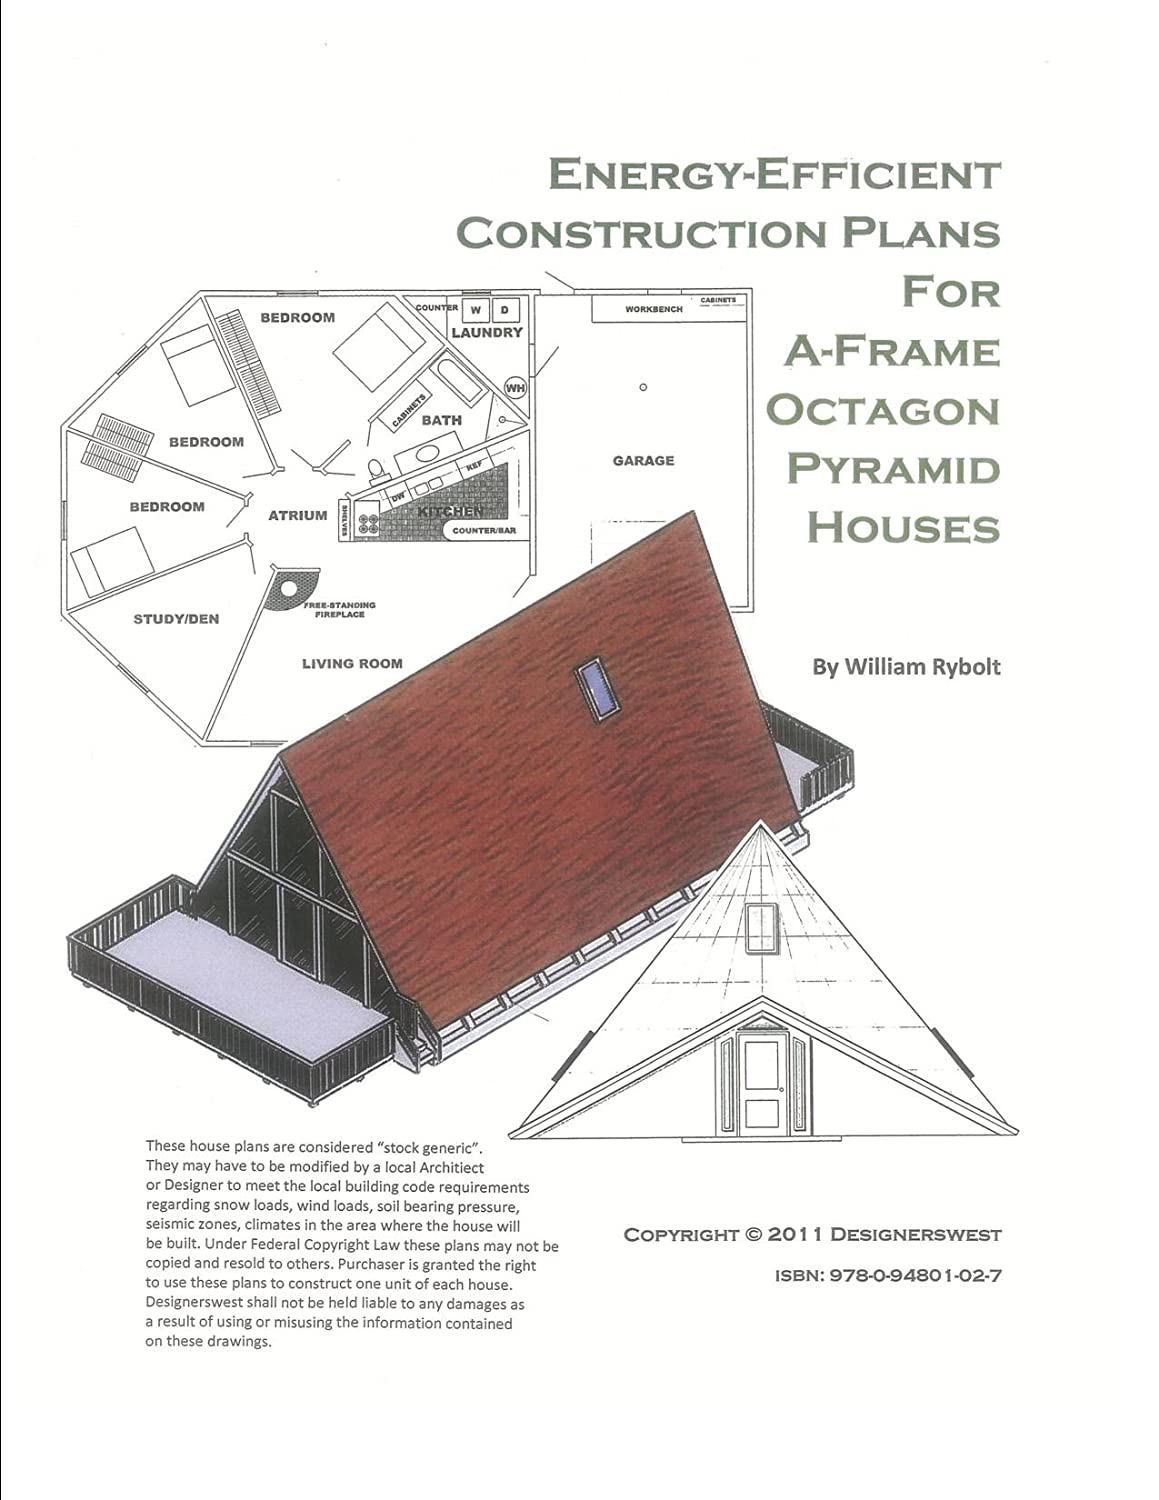 amazon com house plans for a frame octagon and pyramid houses amazon com house plans for a frame octagon and pyramid houses kitchen dining